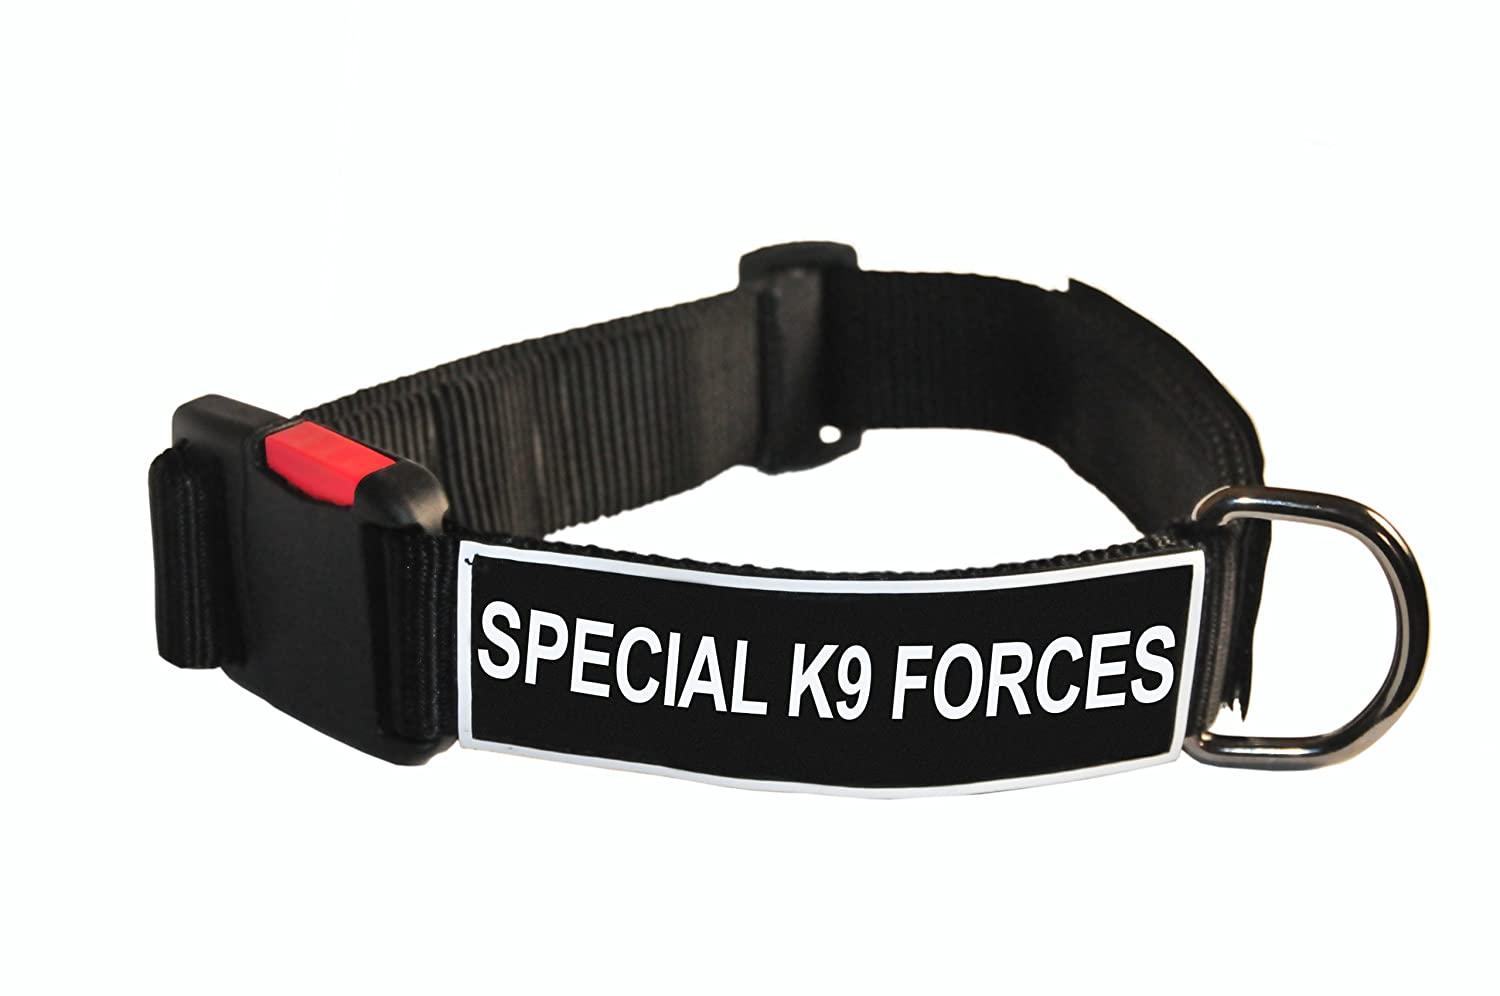 Dean and Tyler Patch Collar , Nylon Dog Collar with SPECIAL K9 FORCES Patches Black Size  Small Fits Neck 18-Inch to 21-Inch